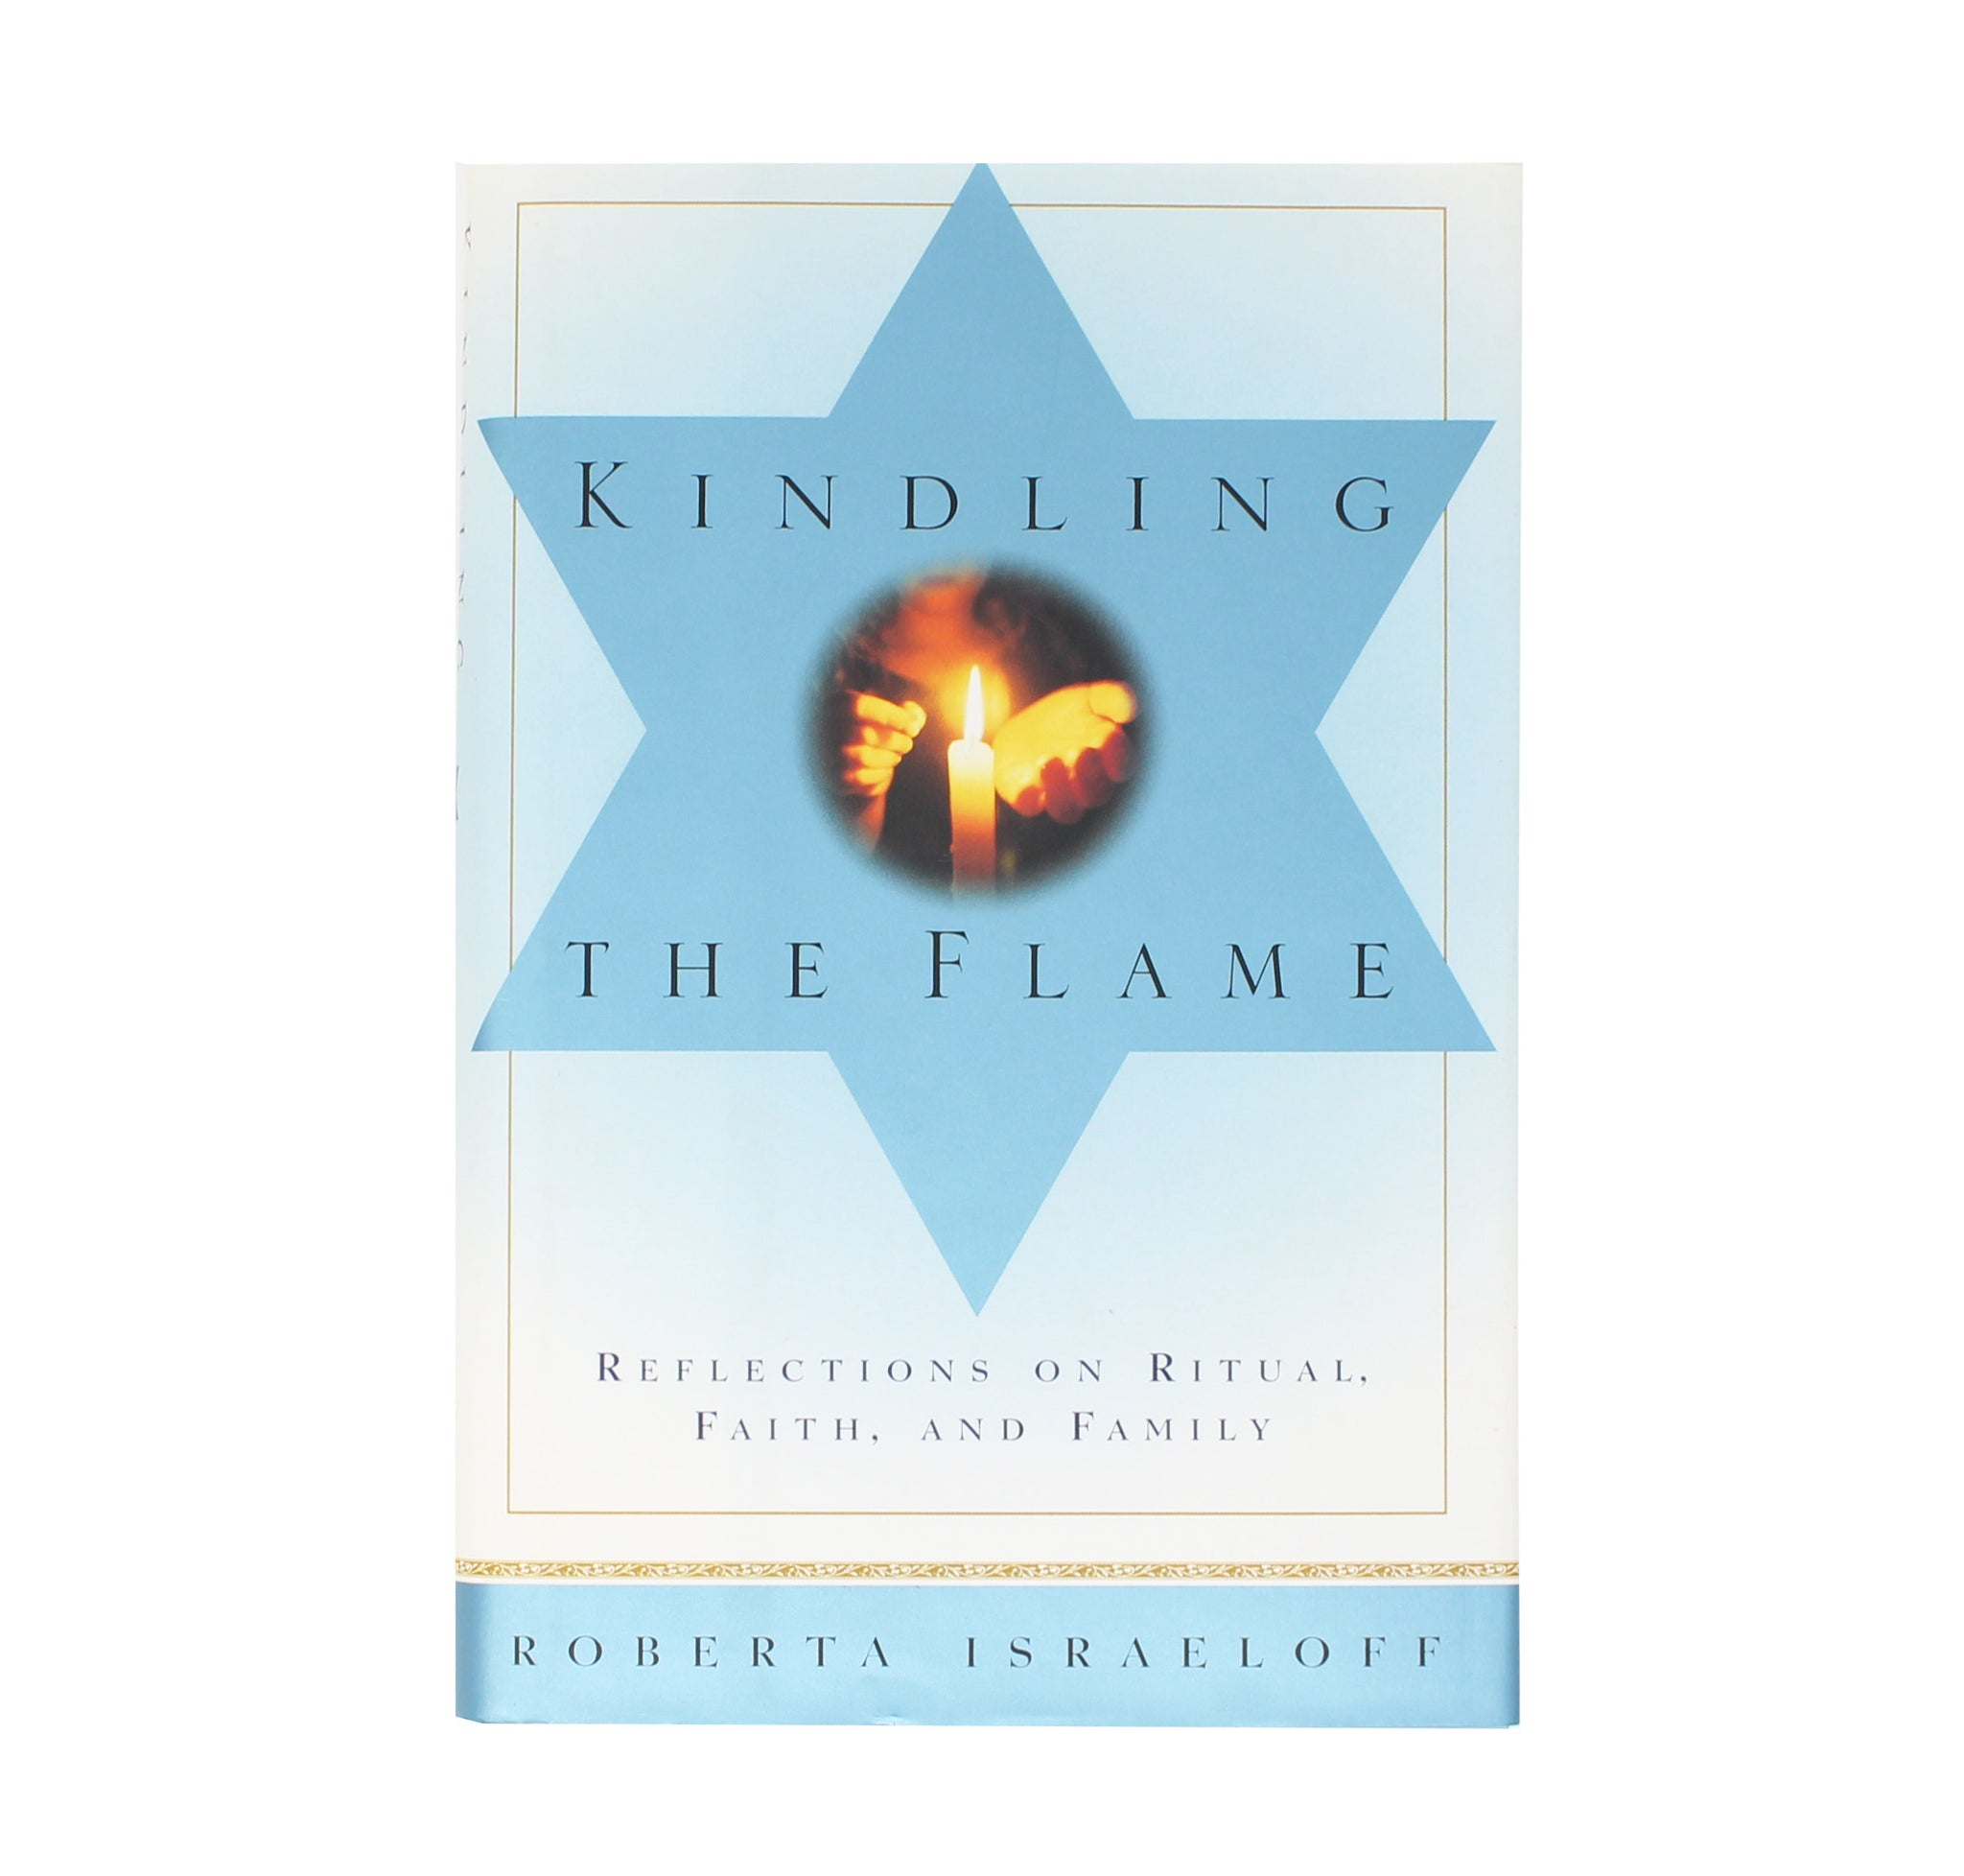 Kindling the Flame: Reflections on Ritual, Faith, and Family